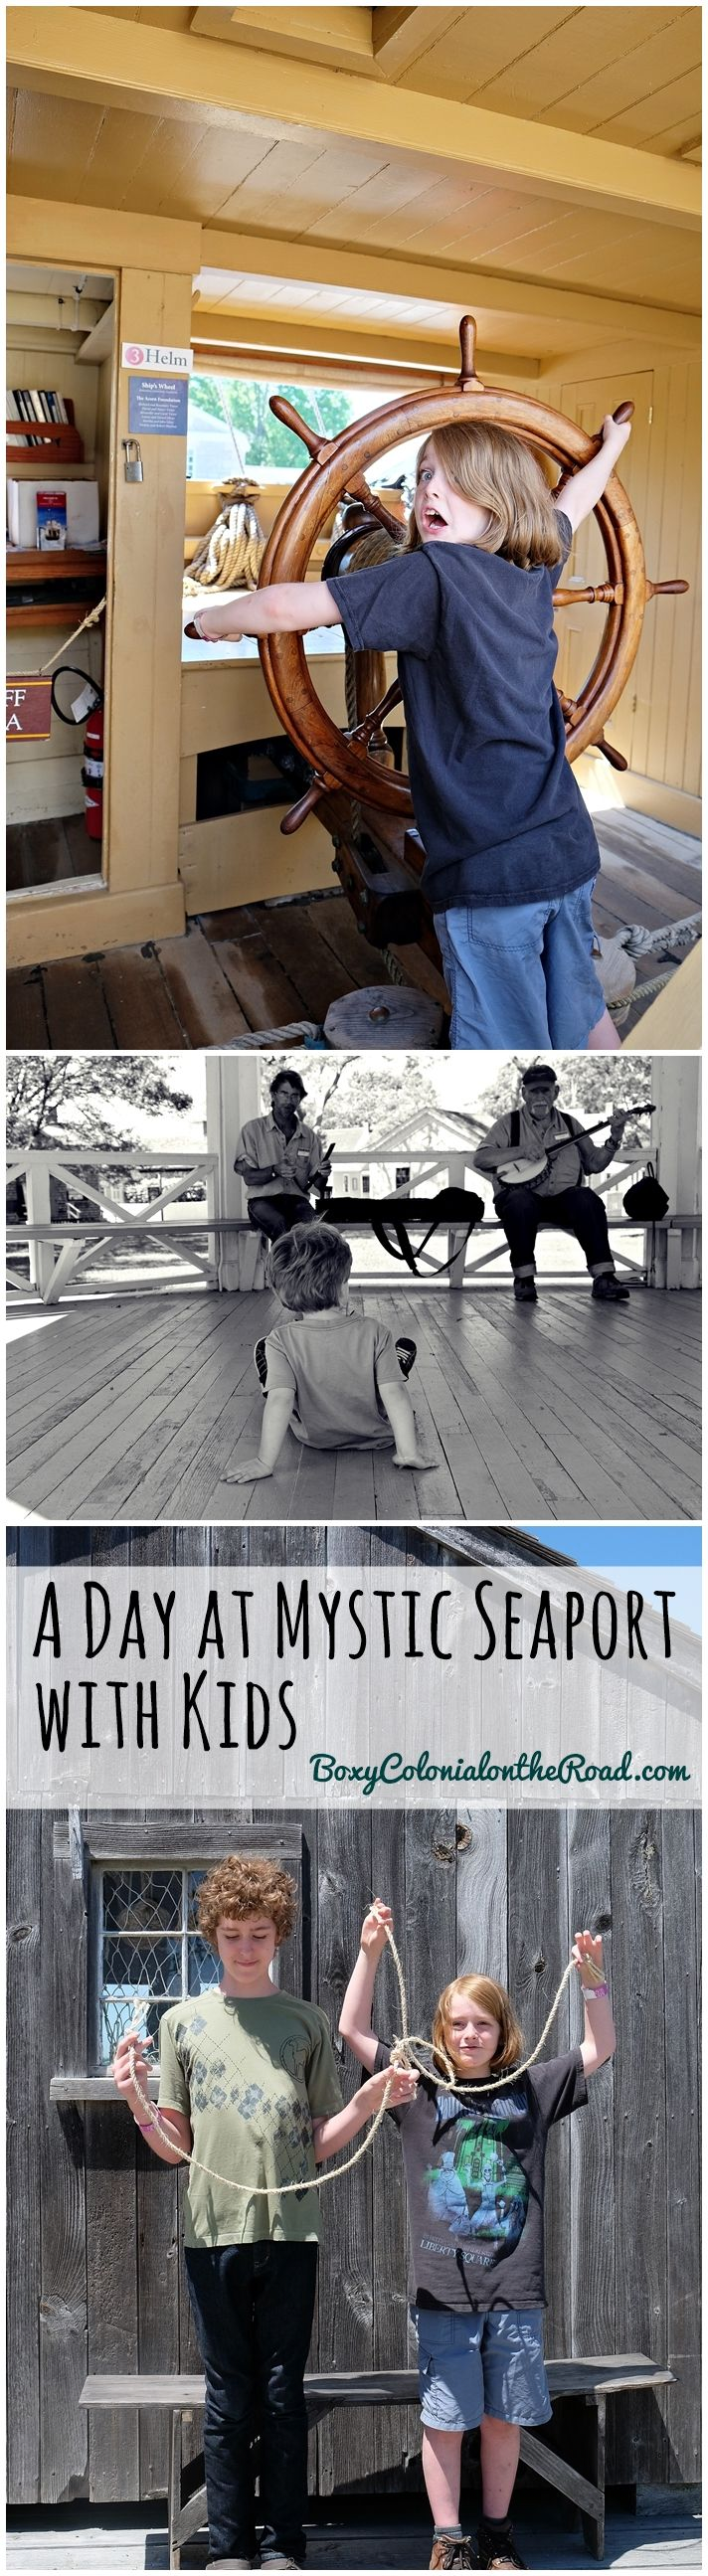 A day touring Mystic Seaport in Mystic, CT with kids